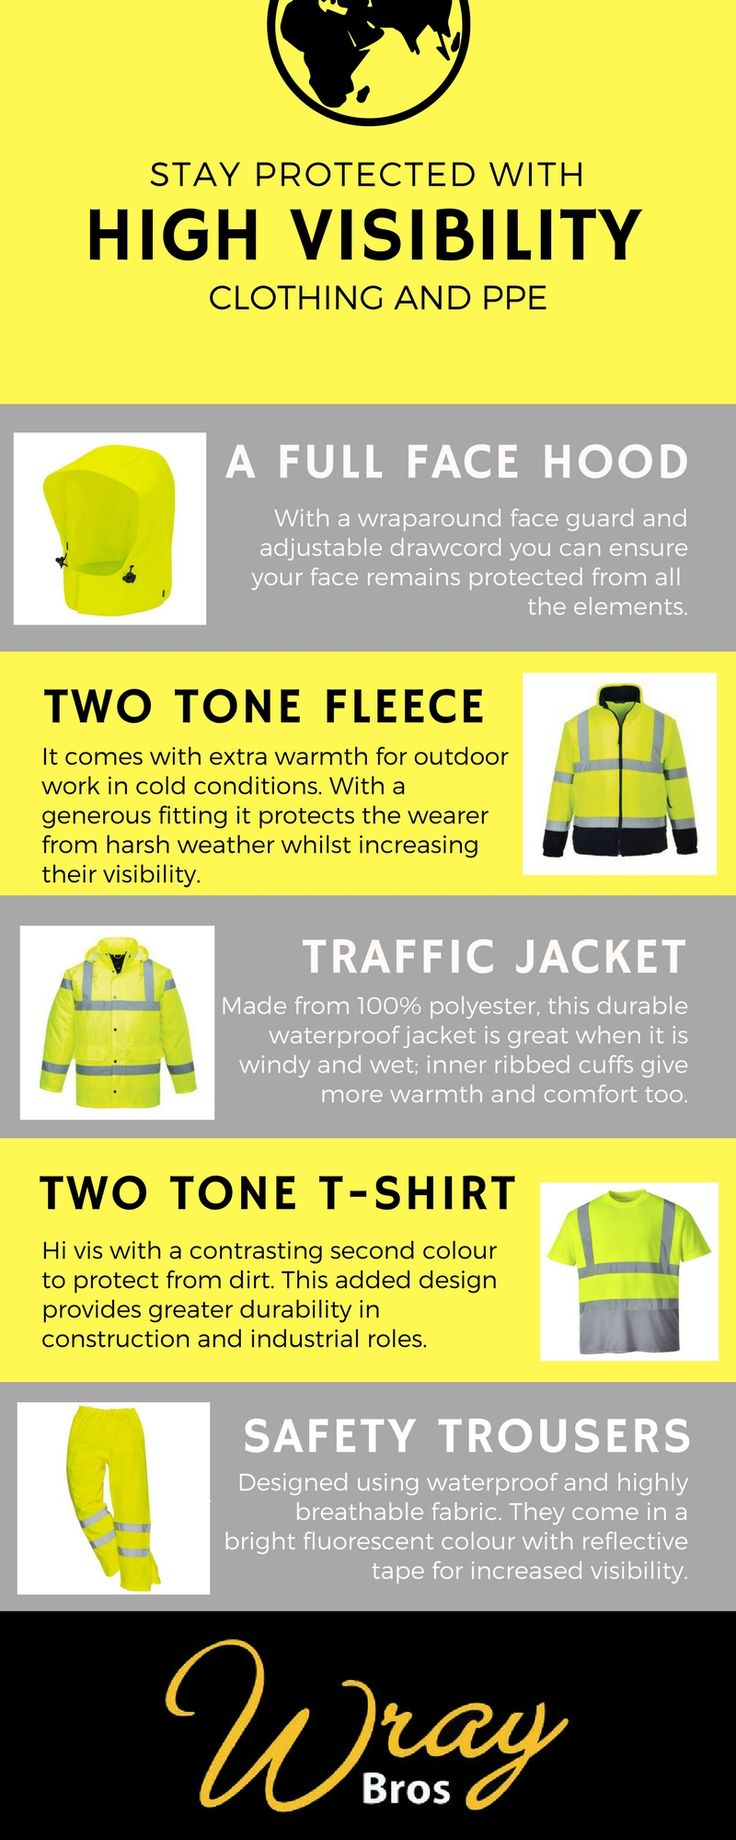 Featuring a #HiVis hood, vest, #fleece, jacket and trousers; our high visibility info graph gives you a taste of what we offer. Wray Bros provide a host of hi vis #workwear and #PPE for workers in the #building, #industrial and #construction #industry. Visit our website in the link below now for the best deals on #safety clothing.